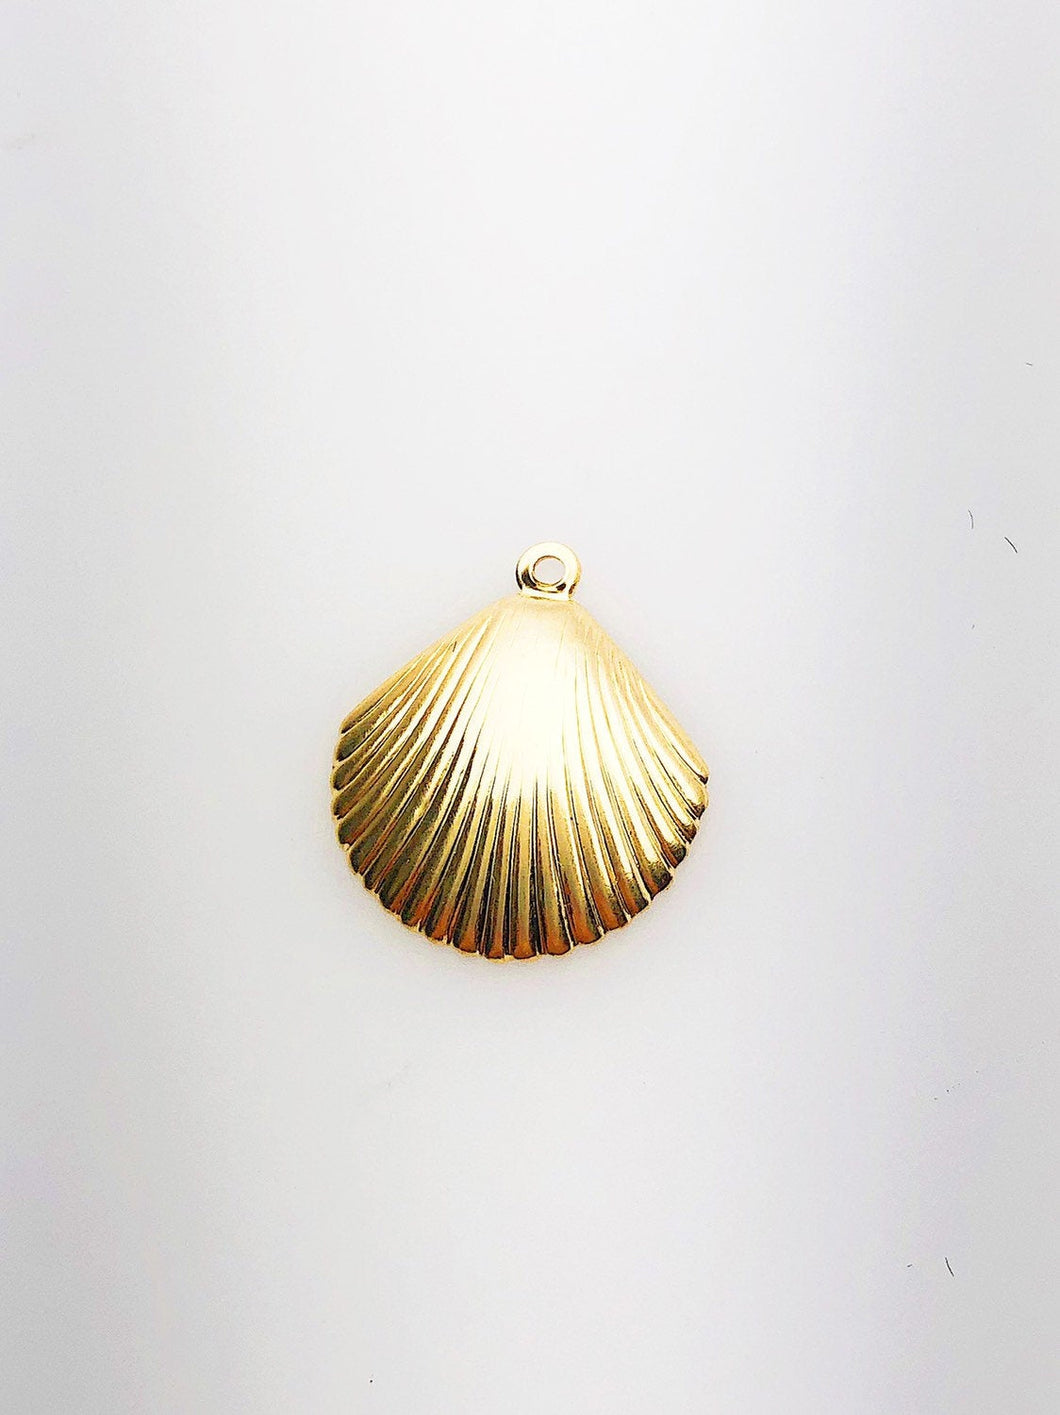 14K Gold Fill Seashell Charm w/ Ring, 14.4x16.4mm, Made in USA - 483